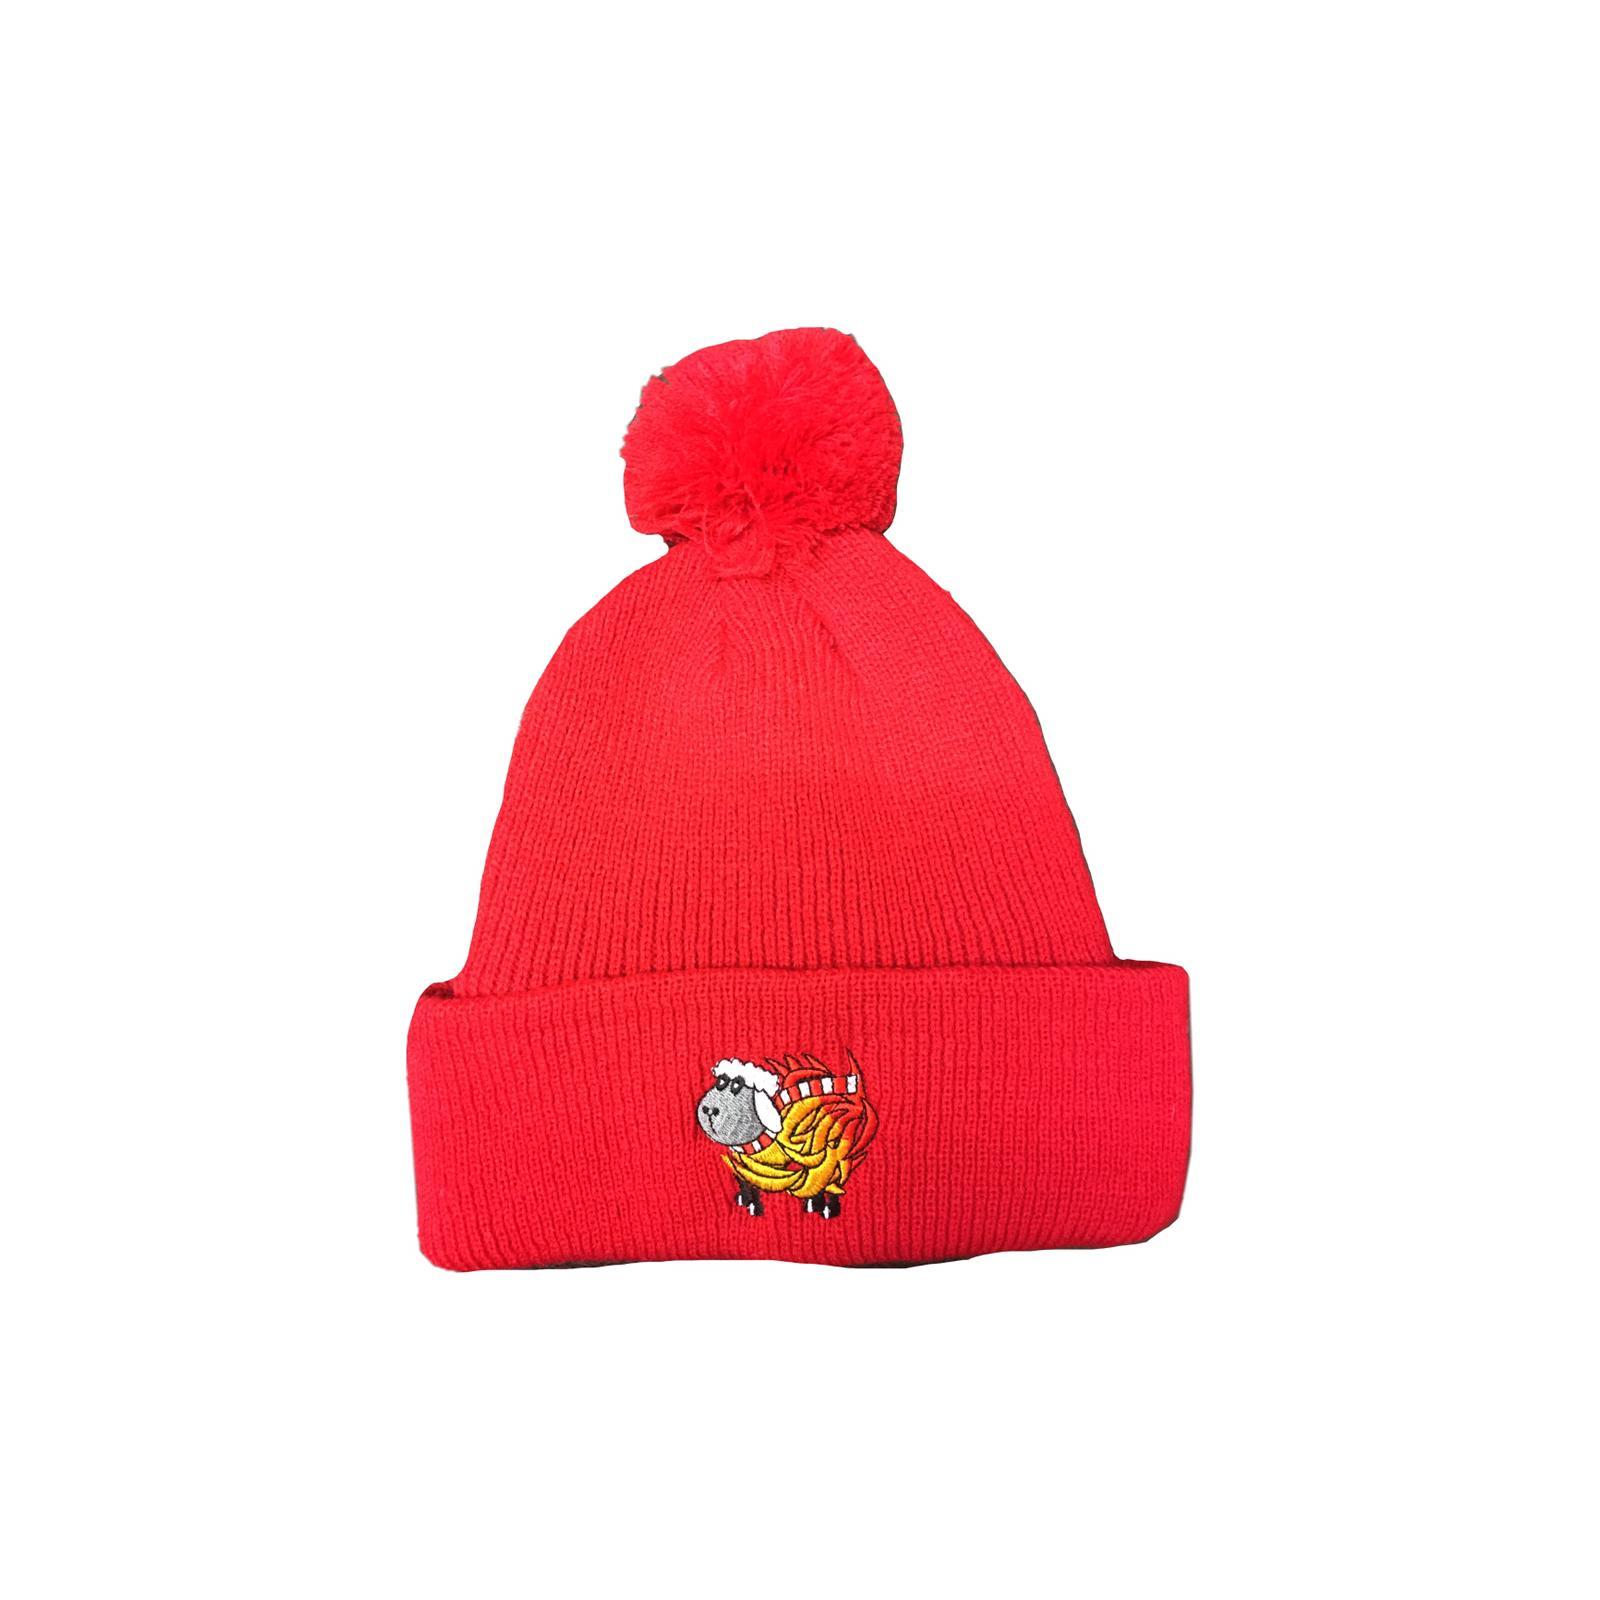 Red Sheep On Fire Bobble Hat